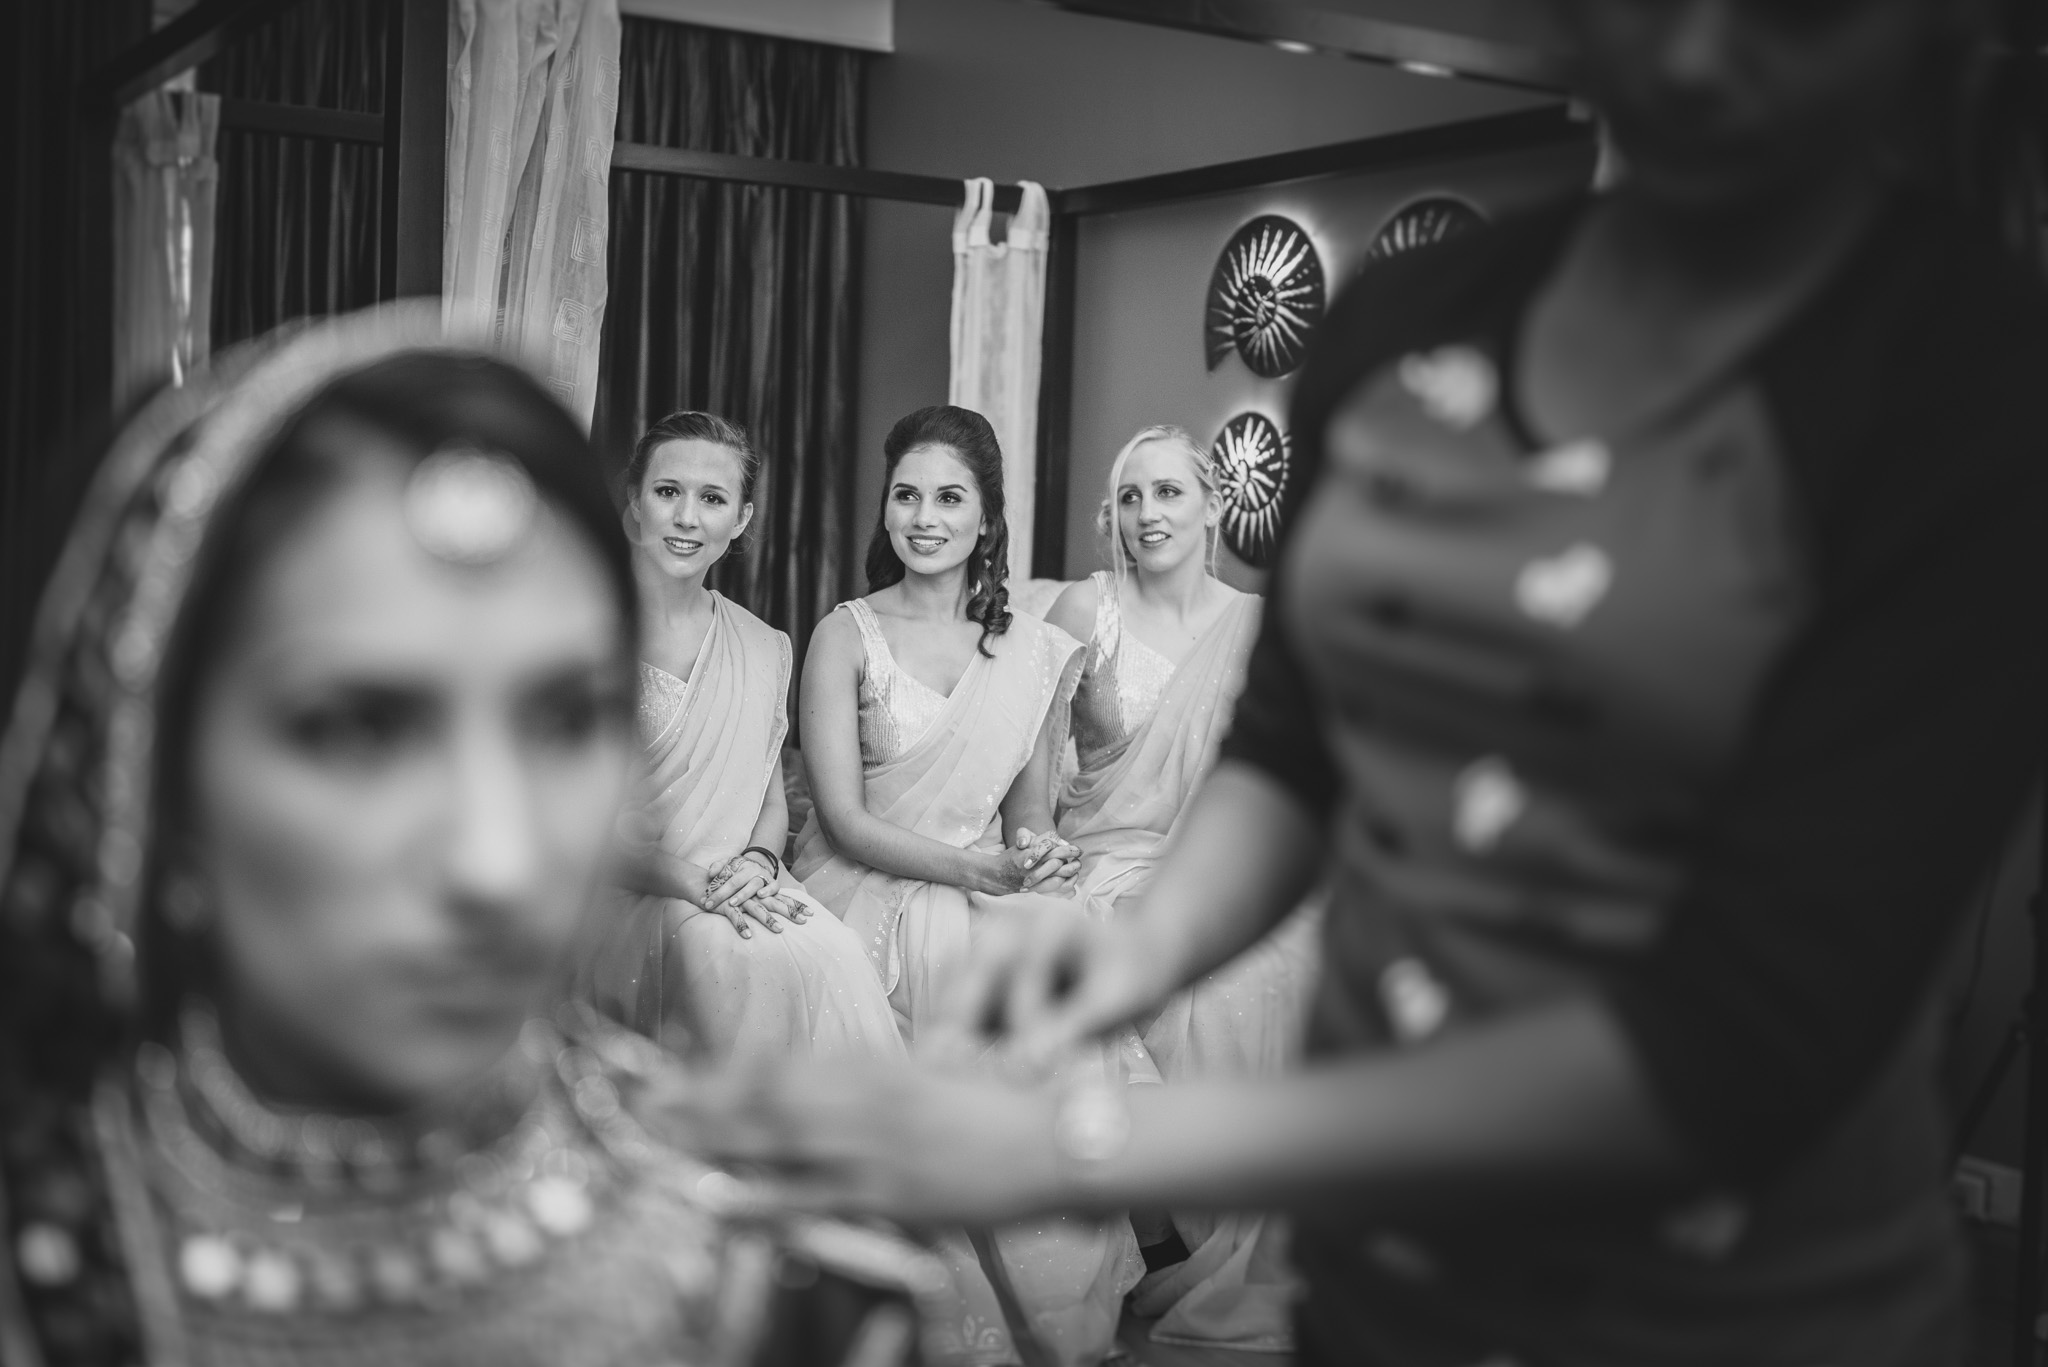 Candid-Wedding-Photography-WhatKnot-Goa-89